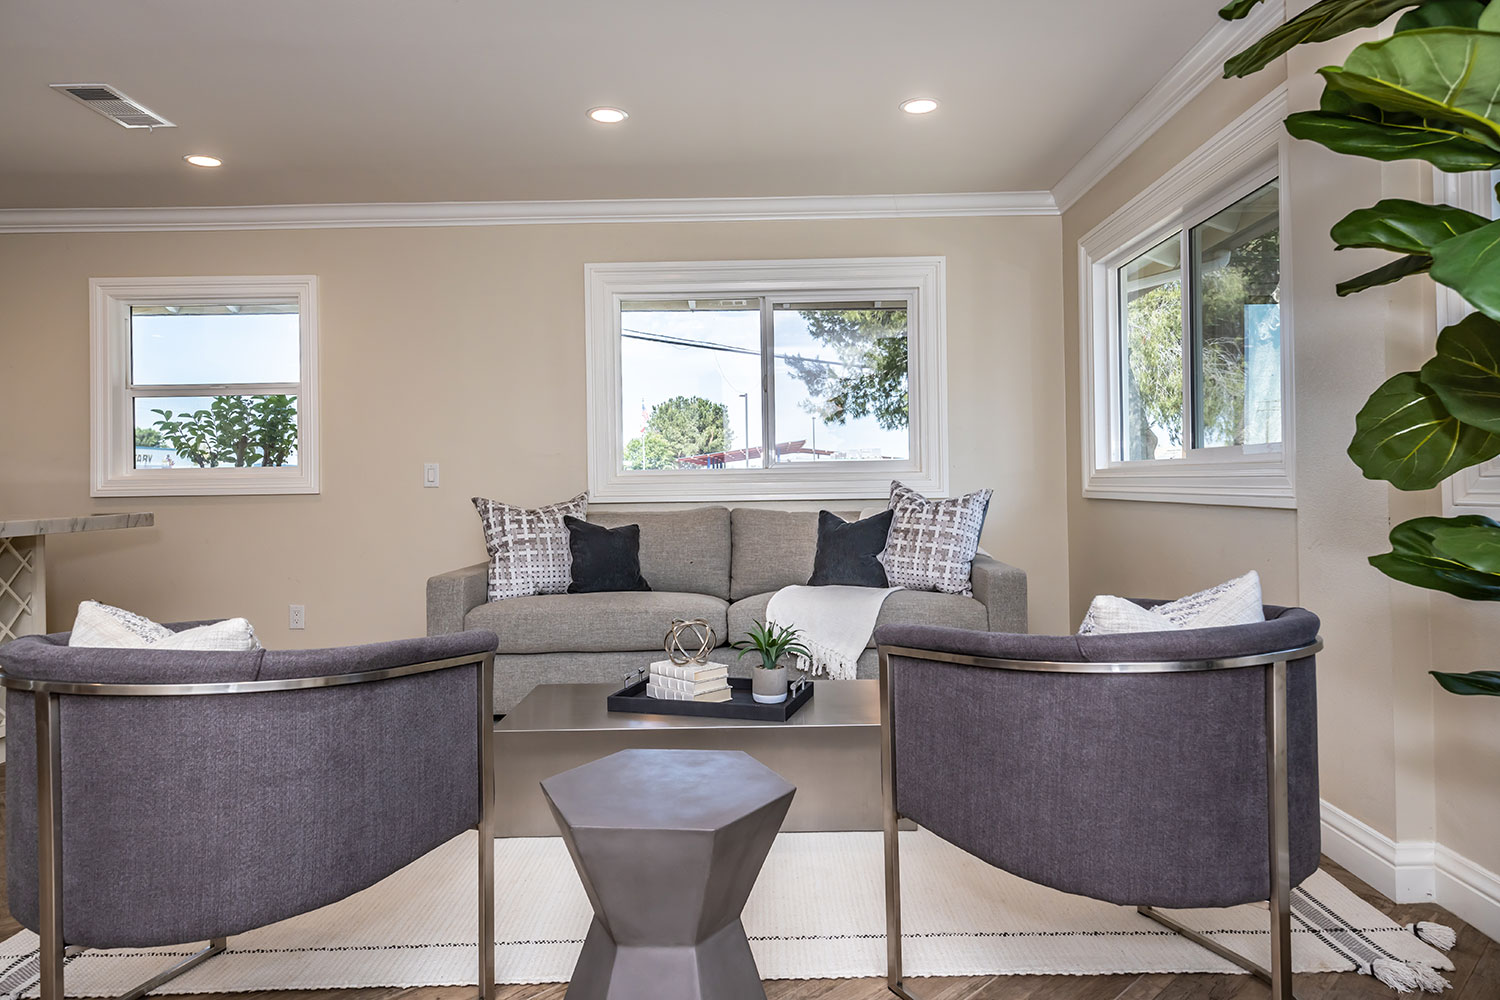 custom chairs in living room design